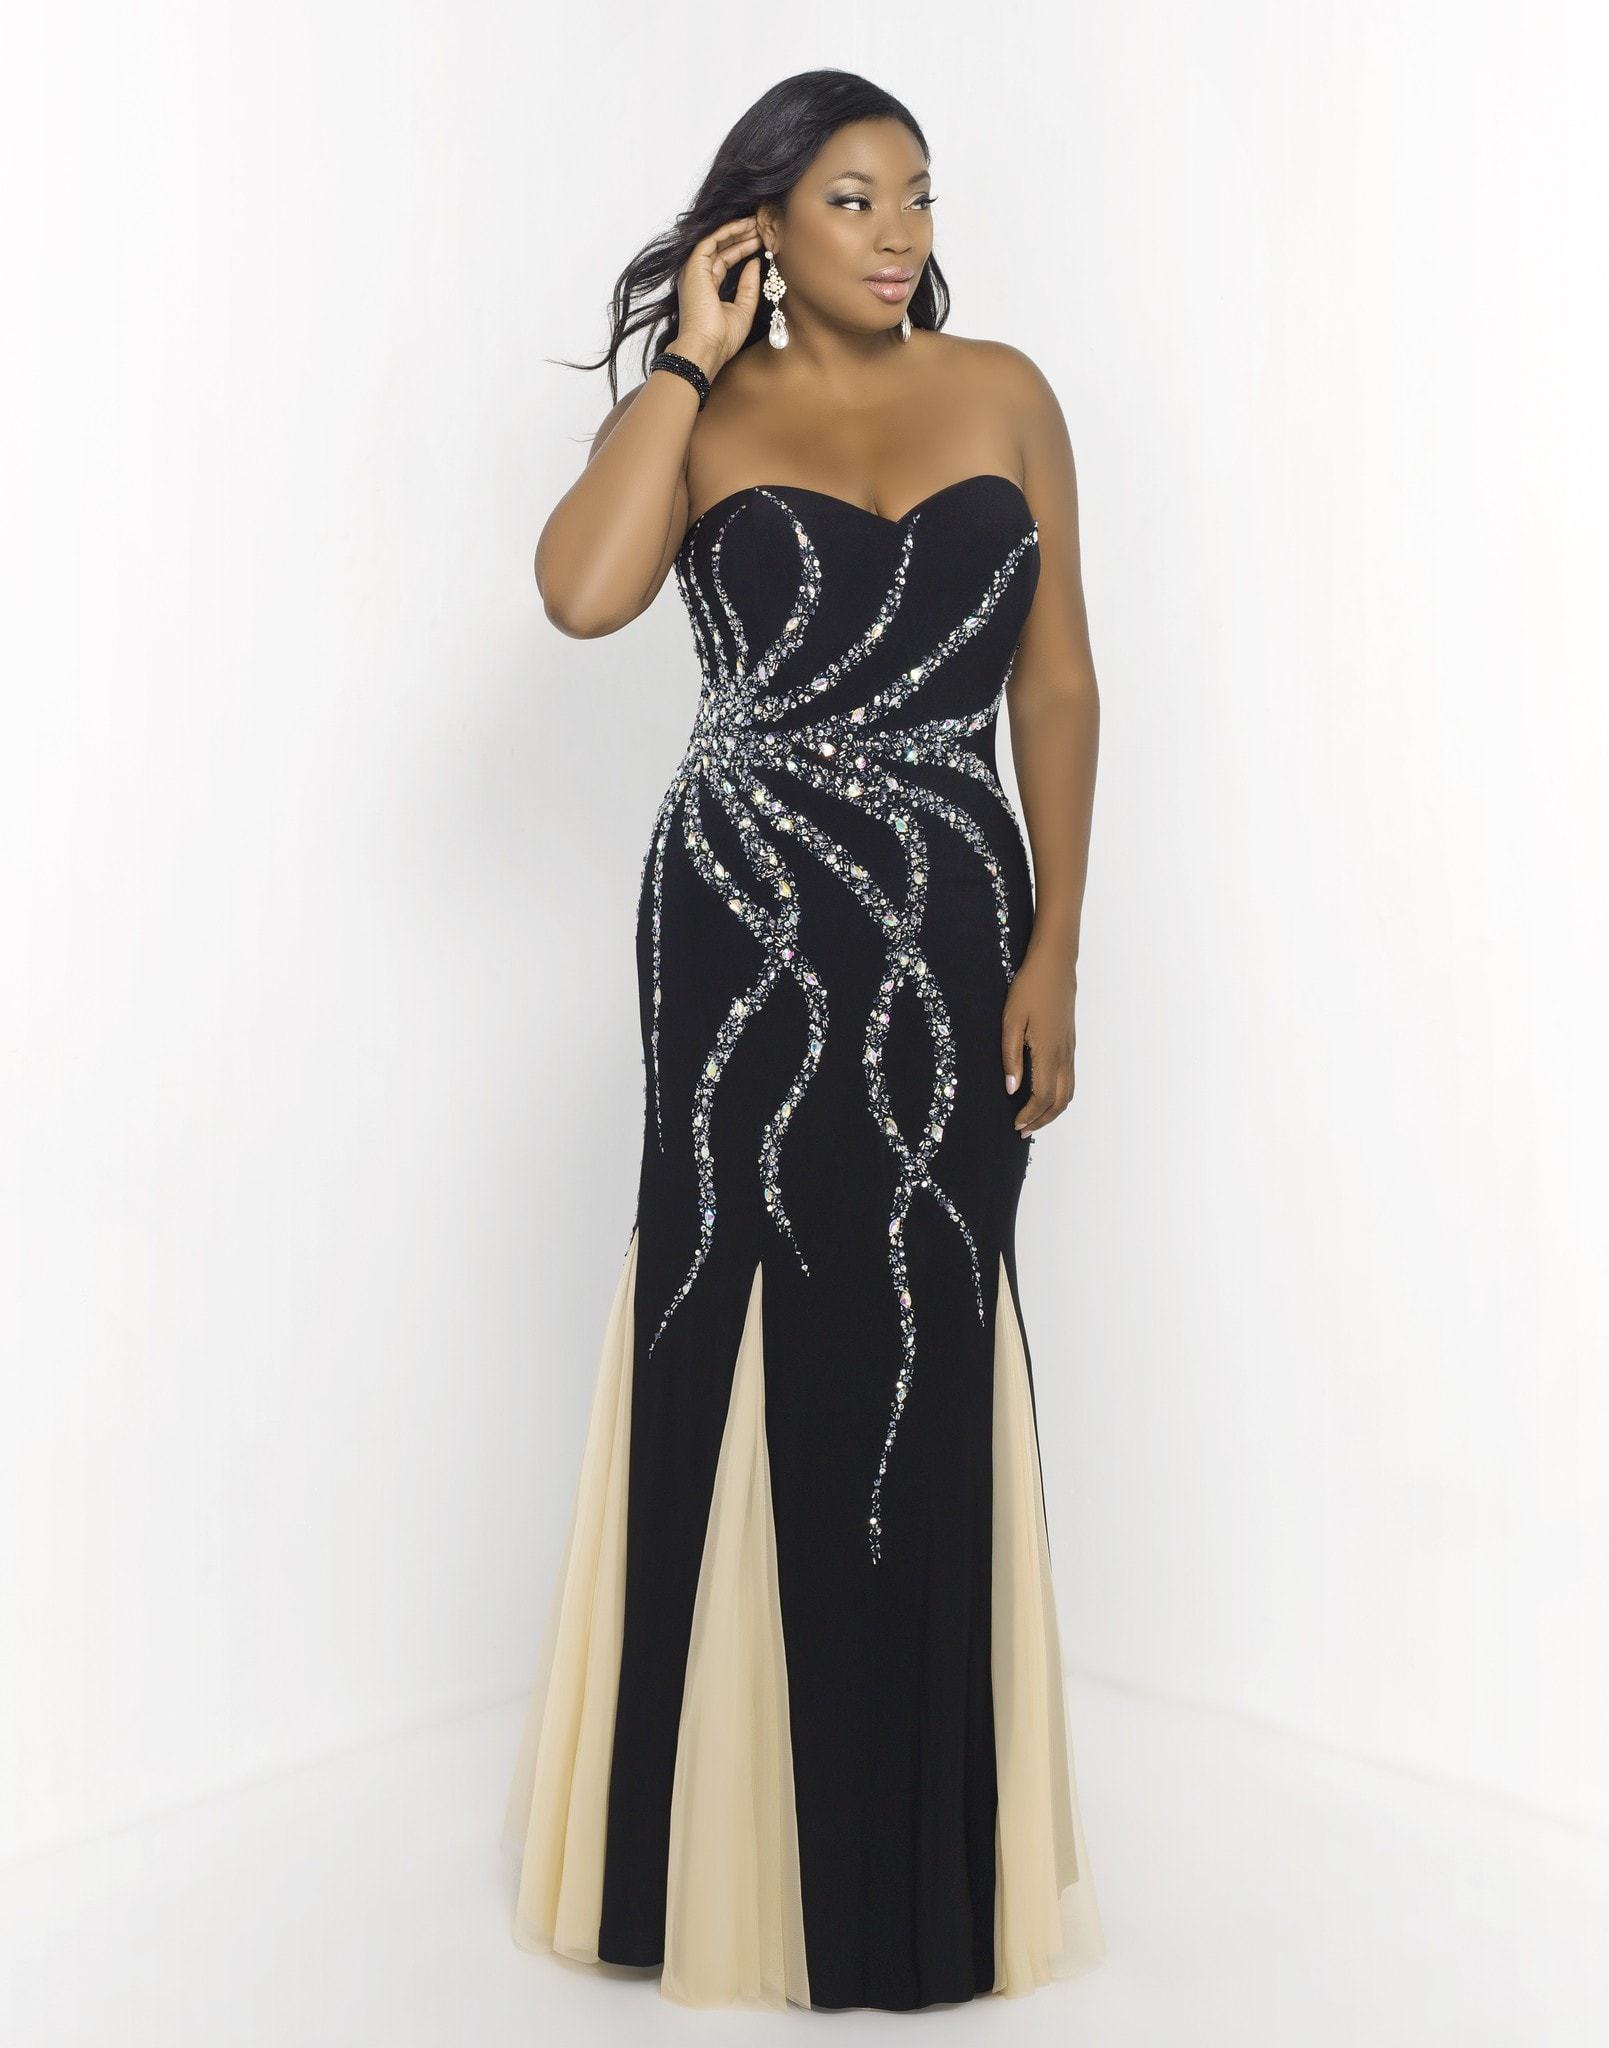 Blush too (plus) 9973w black/nude | Prom stores and Products